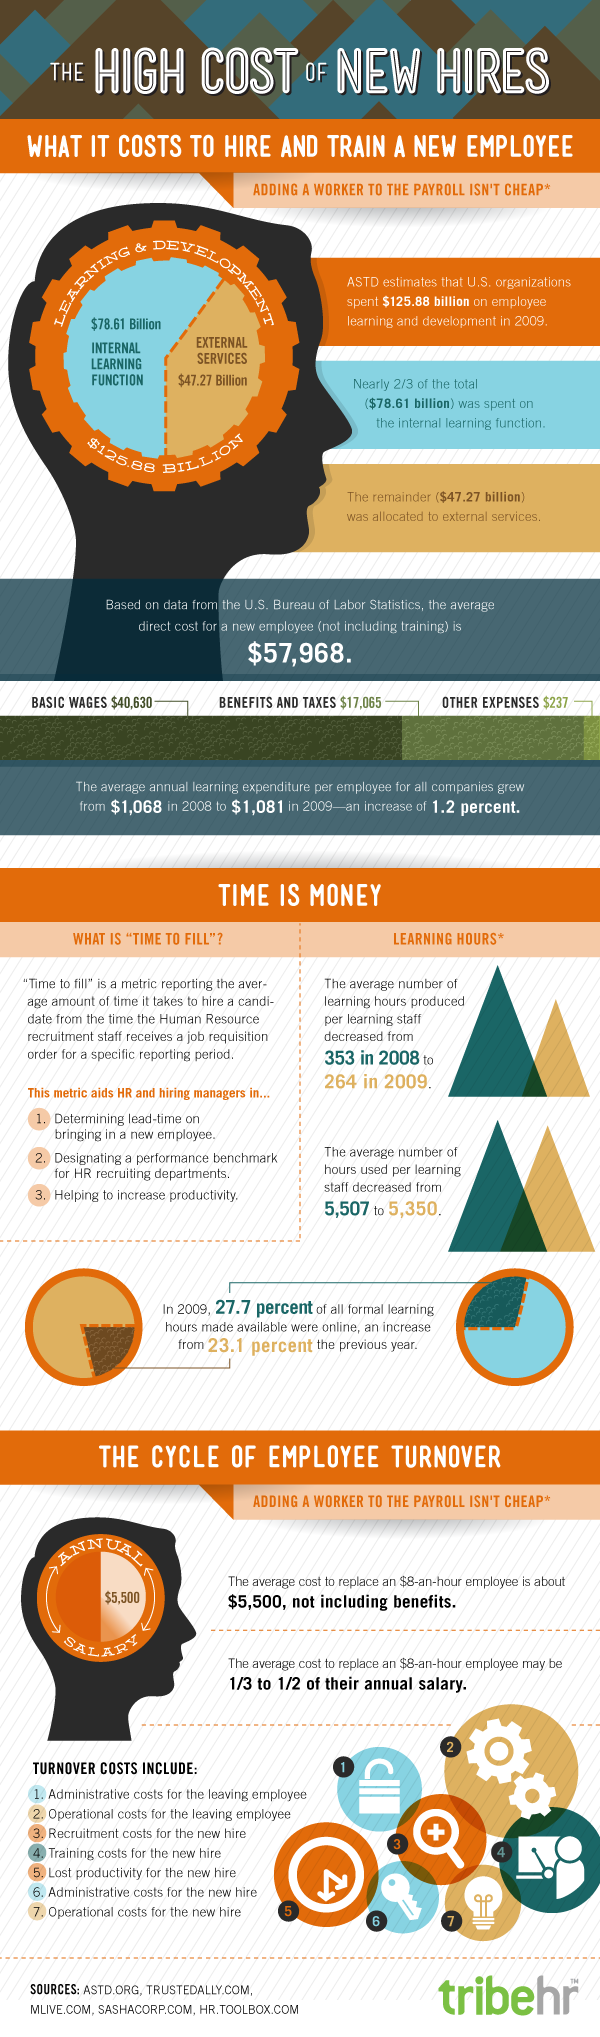 Cost of New Hires [Infographic]